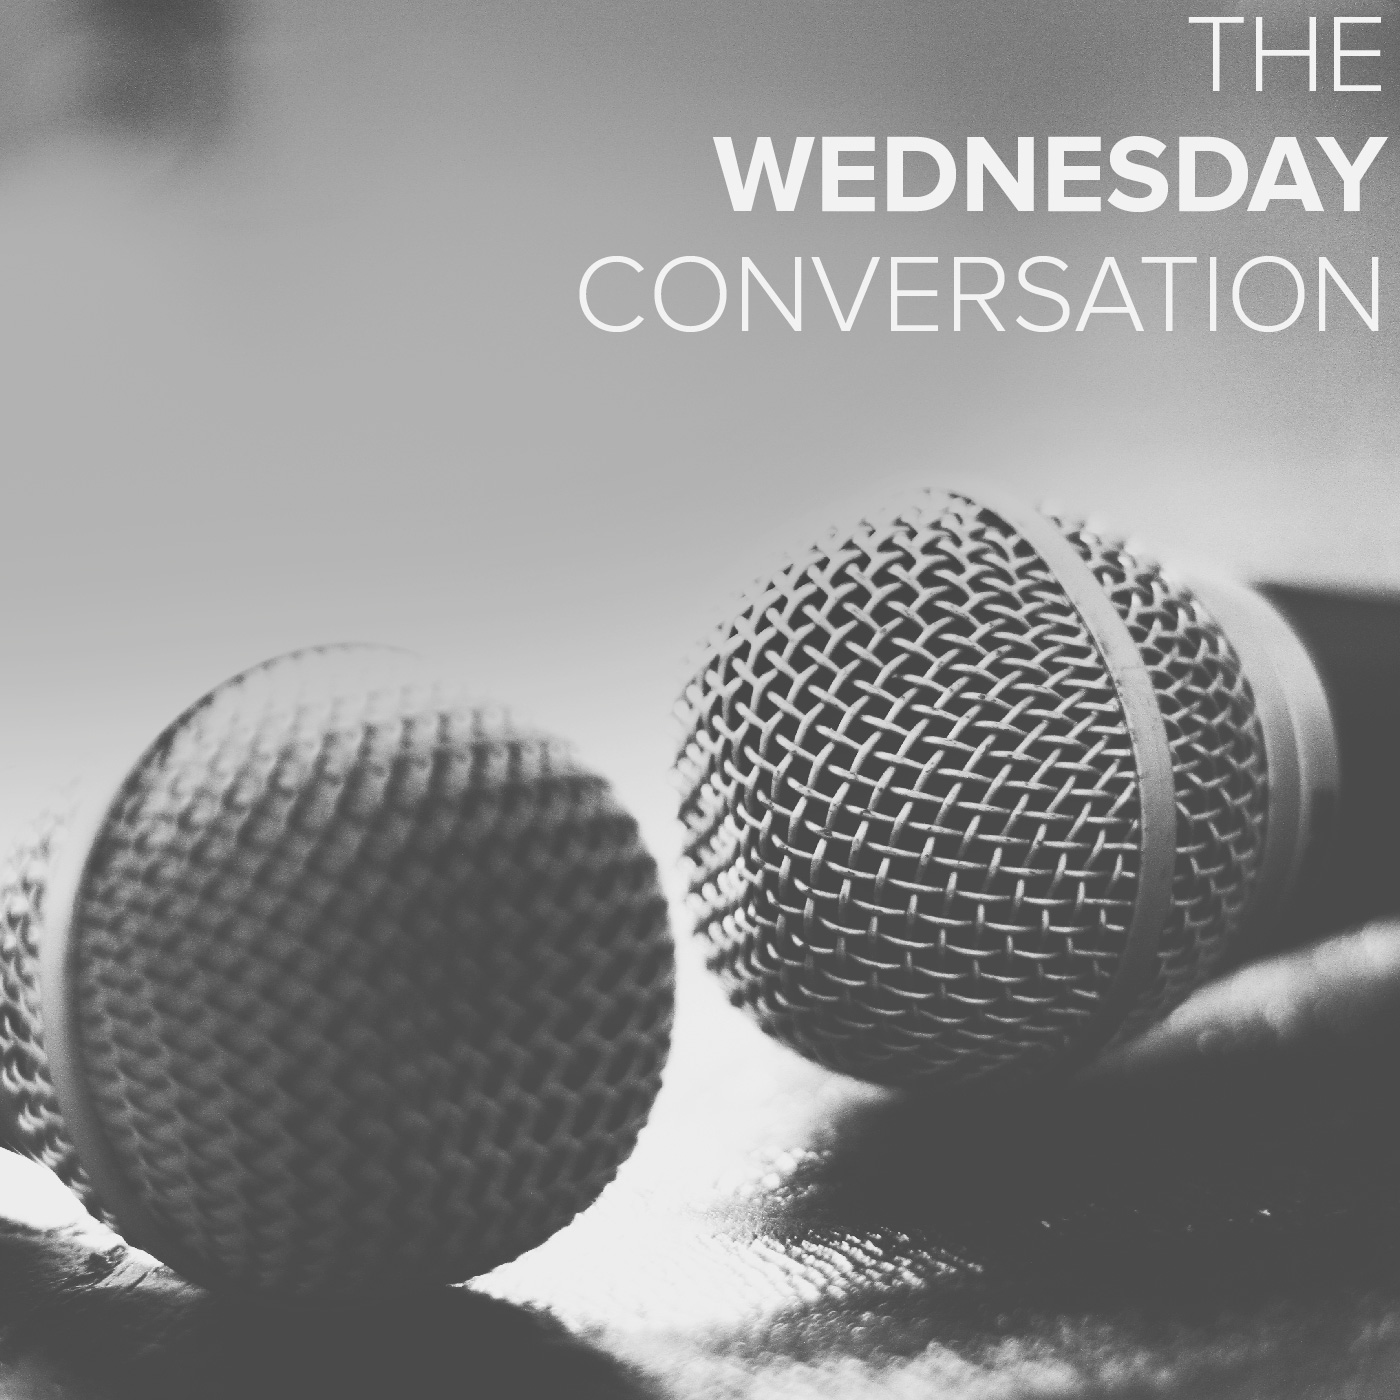 The Wednesday Conversation